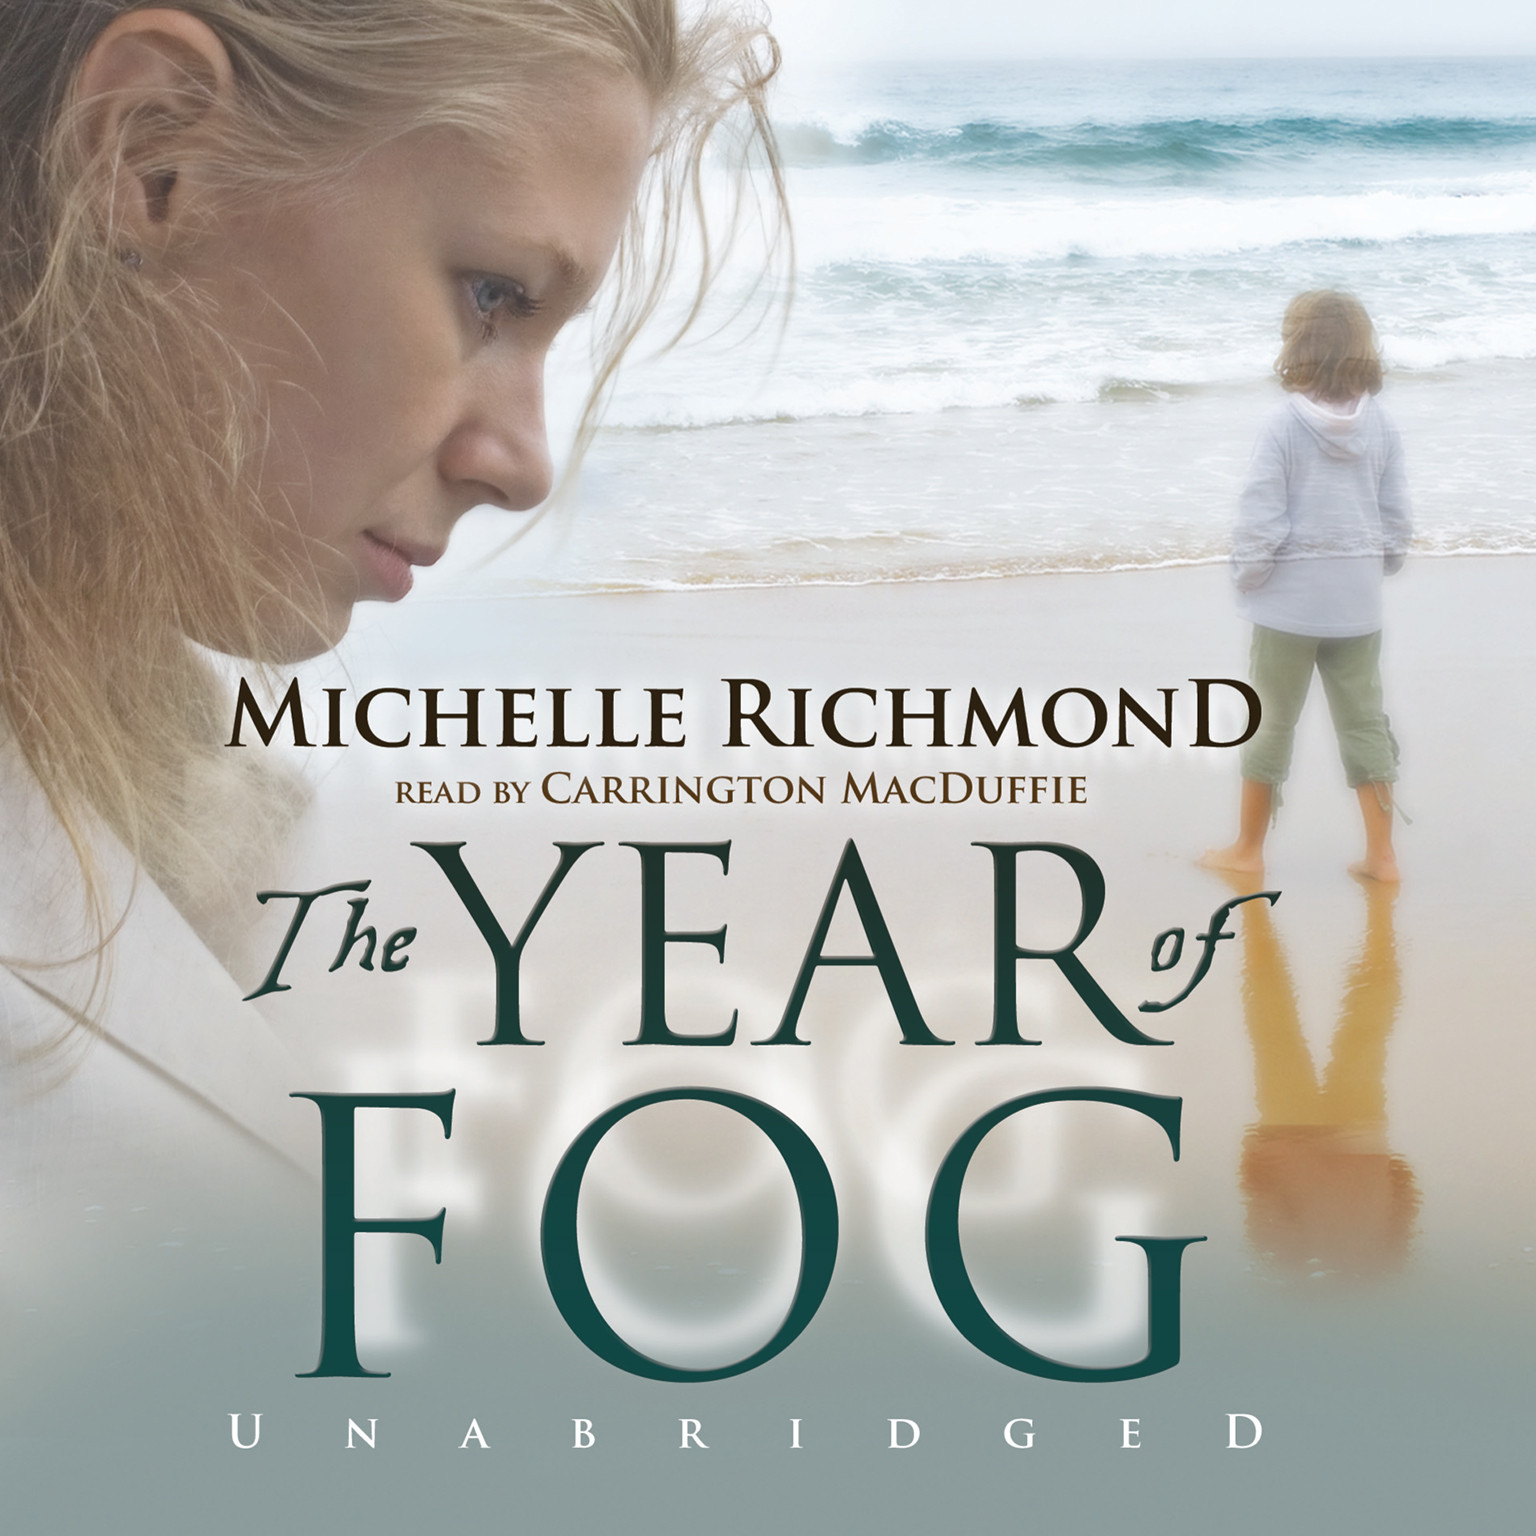 Printable The Year of Fog Audiobook Cover Art